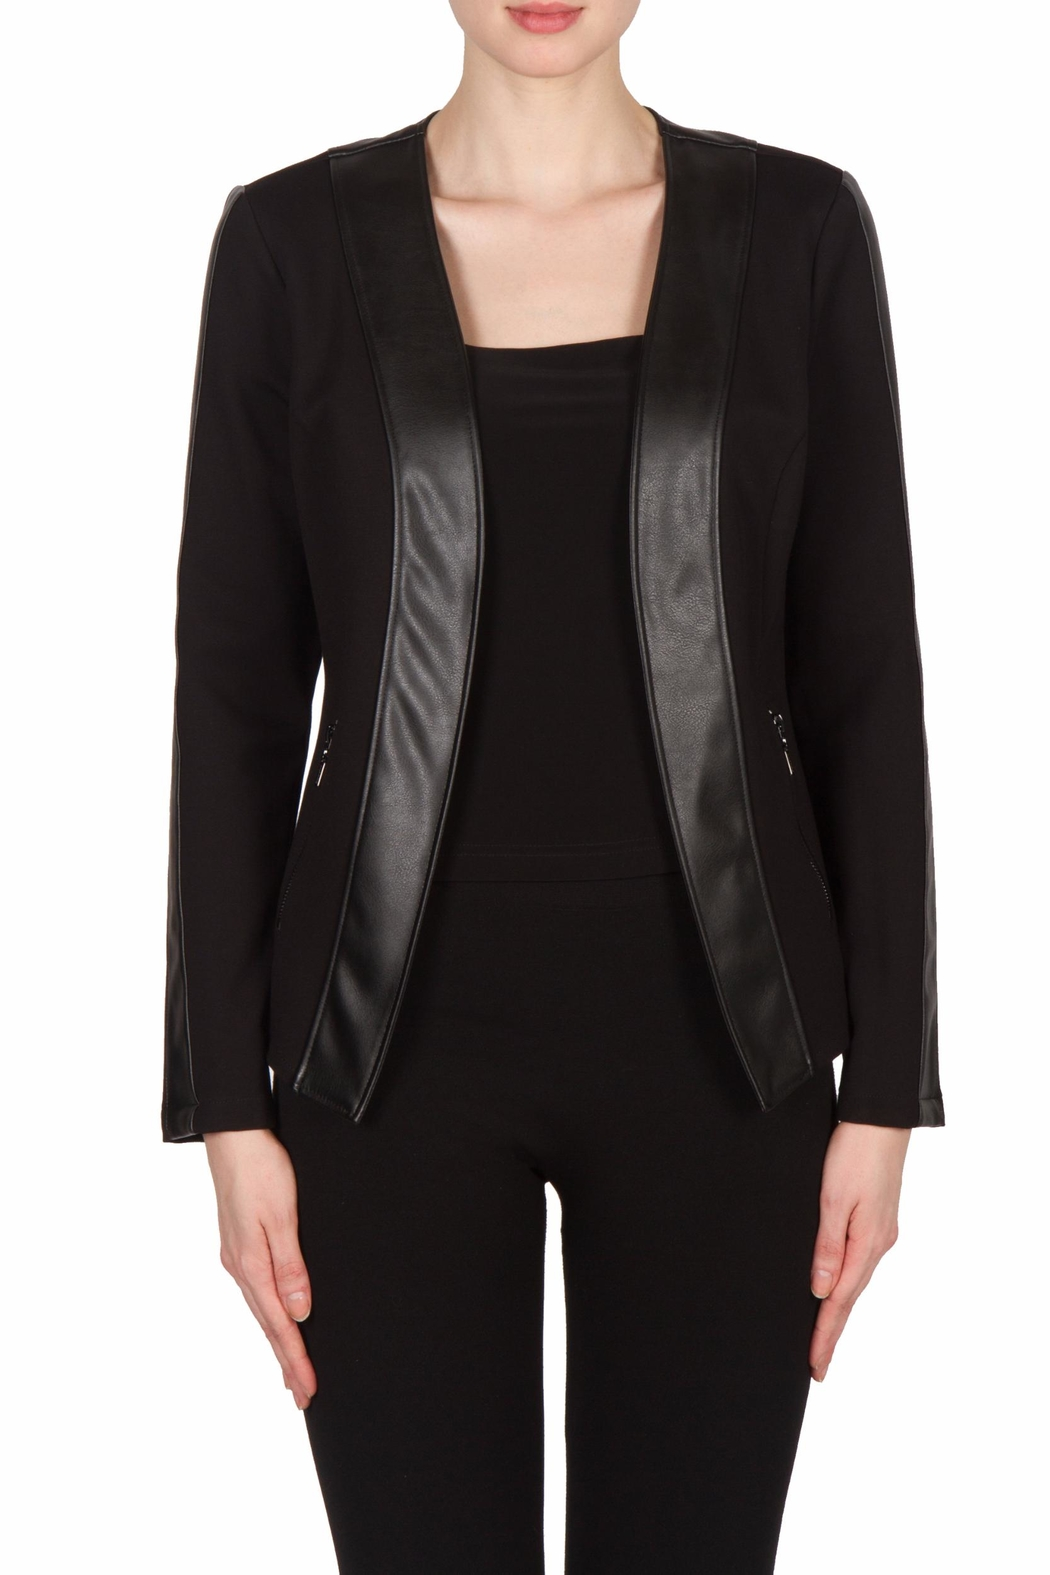 Joseph Ribkoff Leatherette Trimmed Jacket - Front Cropped Image